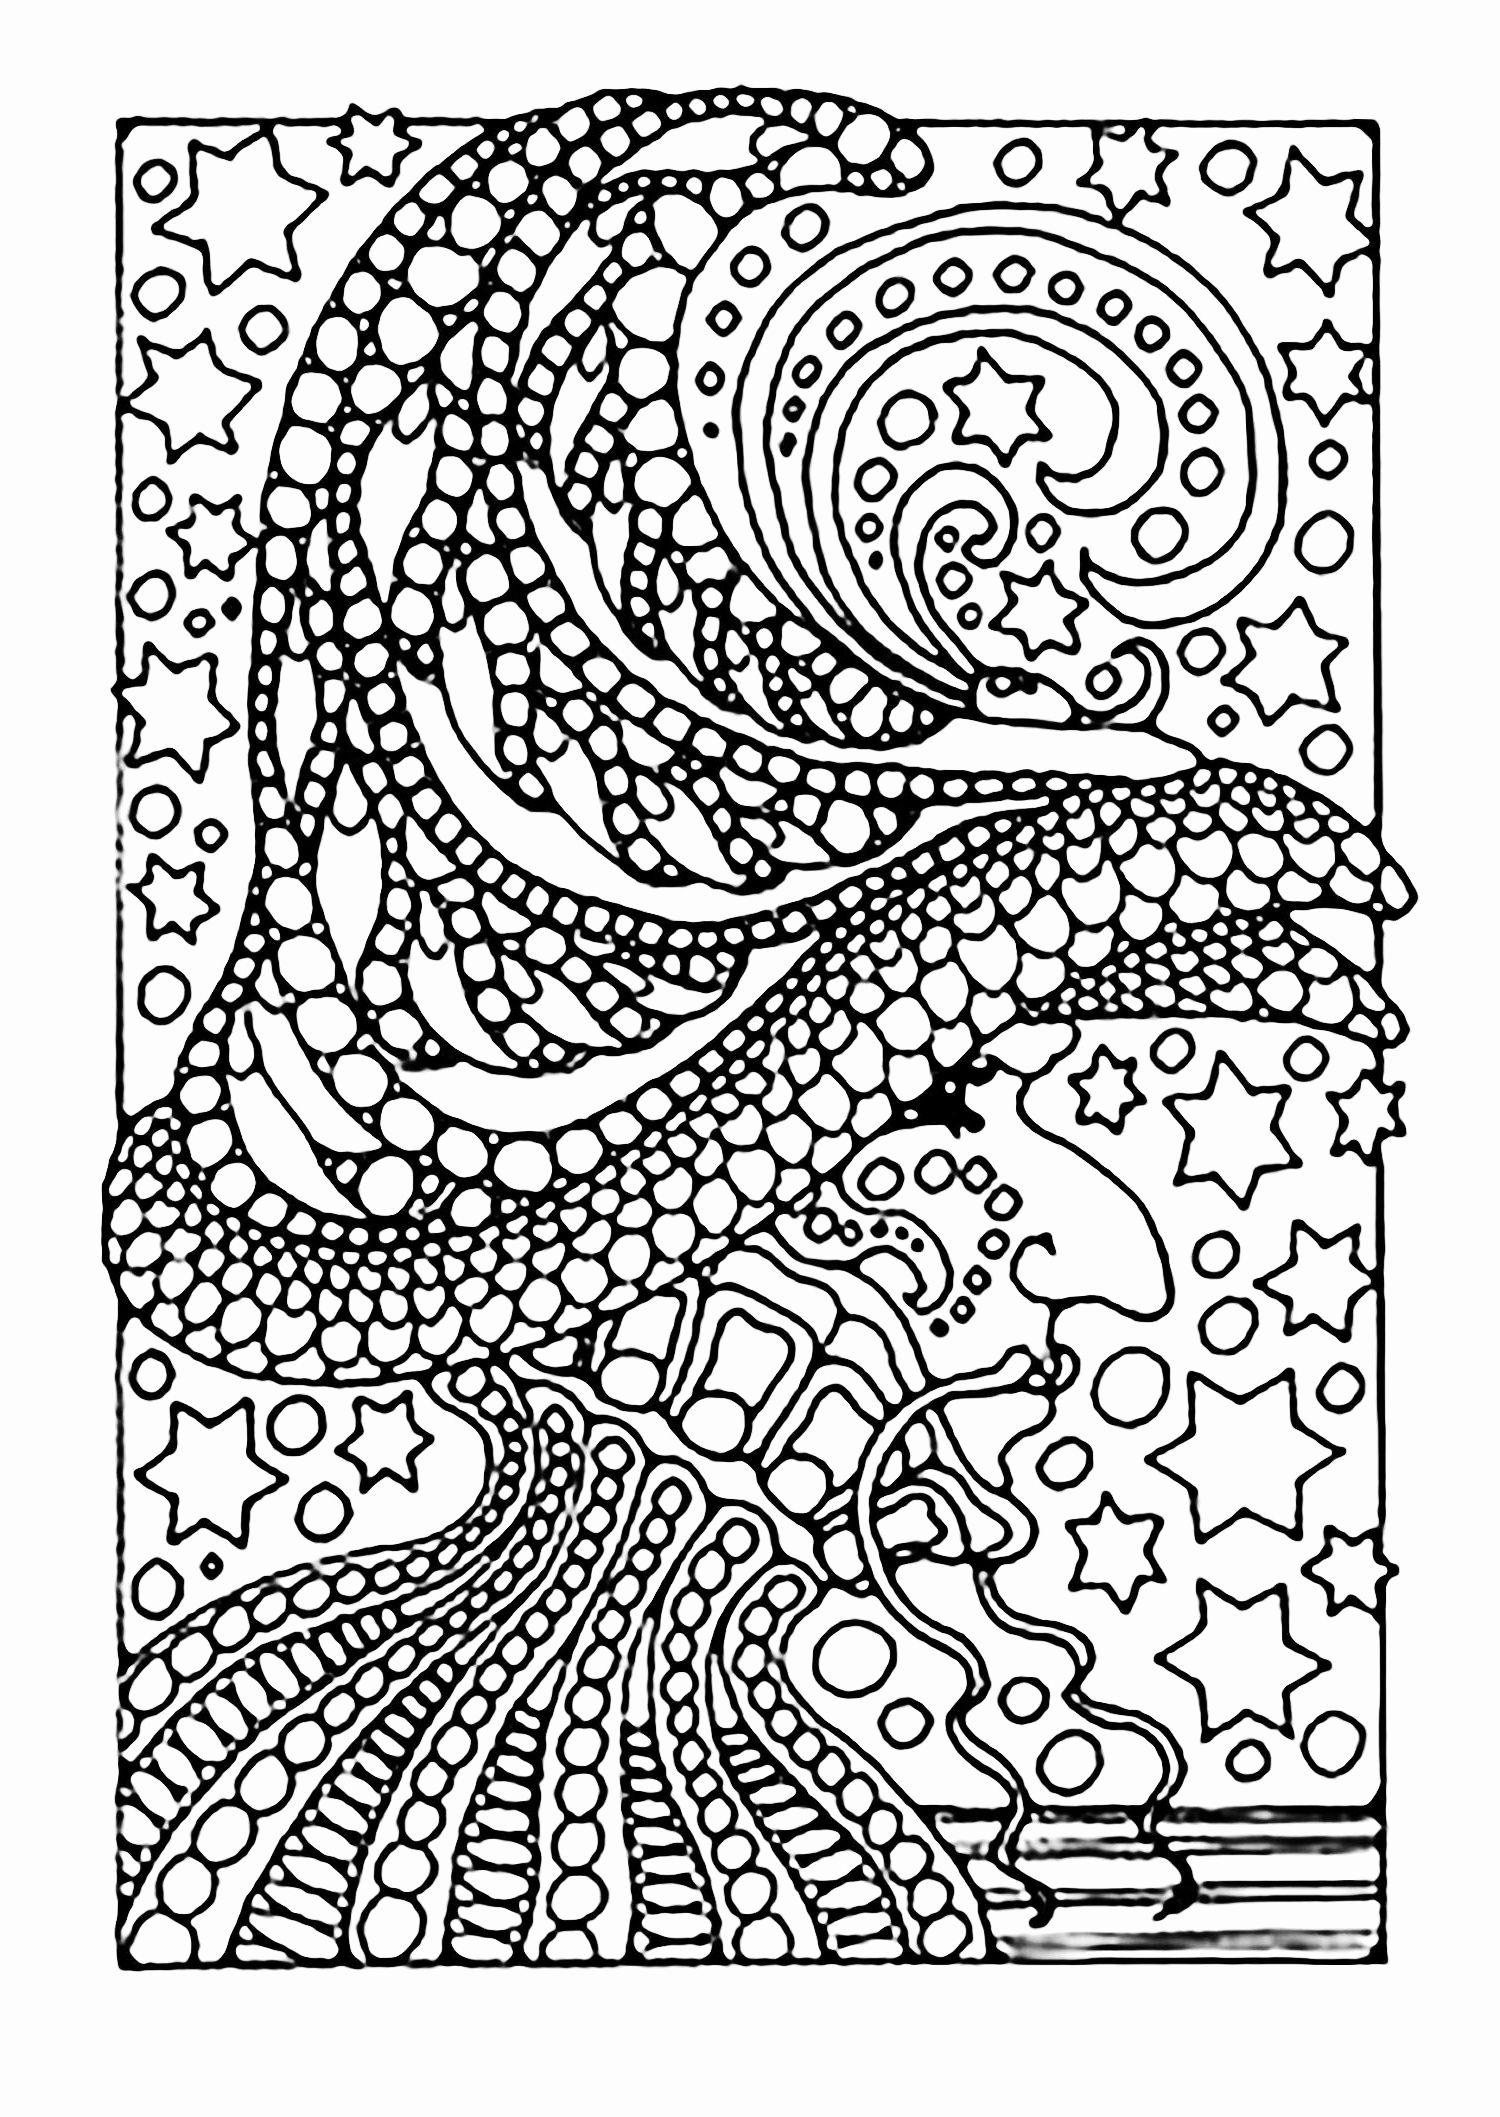 Crayola Make Your Own Coloring Pages Beautiful 21 Beautiful Images Of Dad Coloring Page To Print Cr Mermaid Coloring Pages Coloring Books Animal Coloring Pages